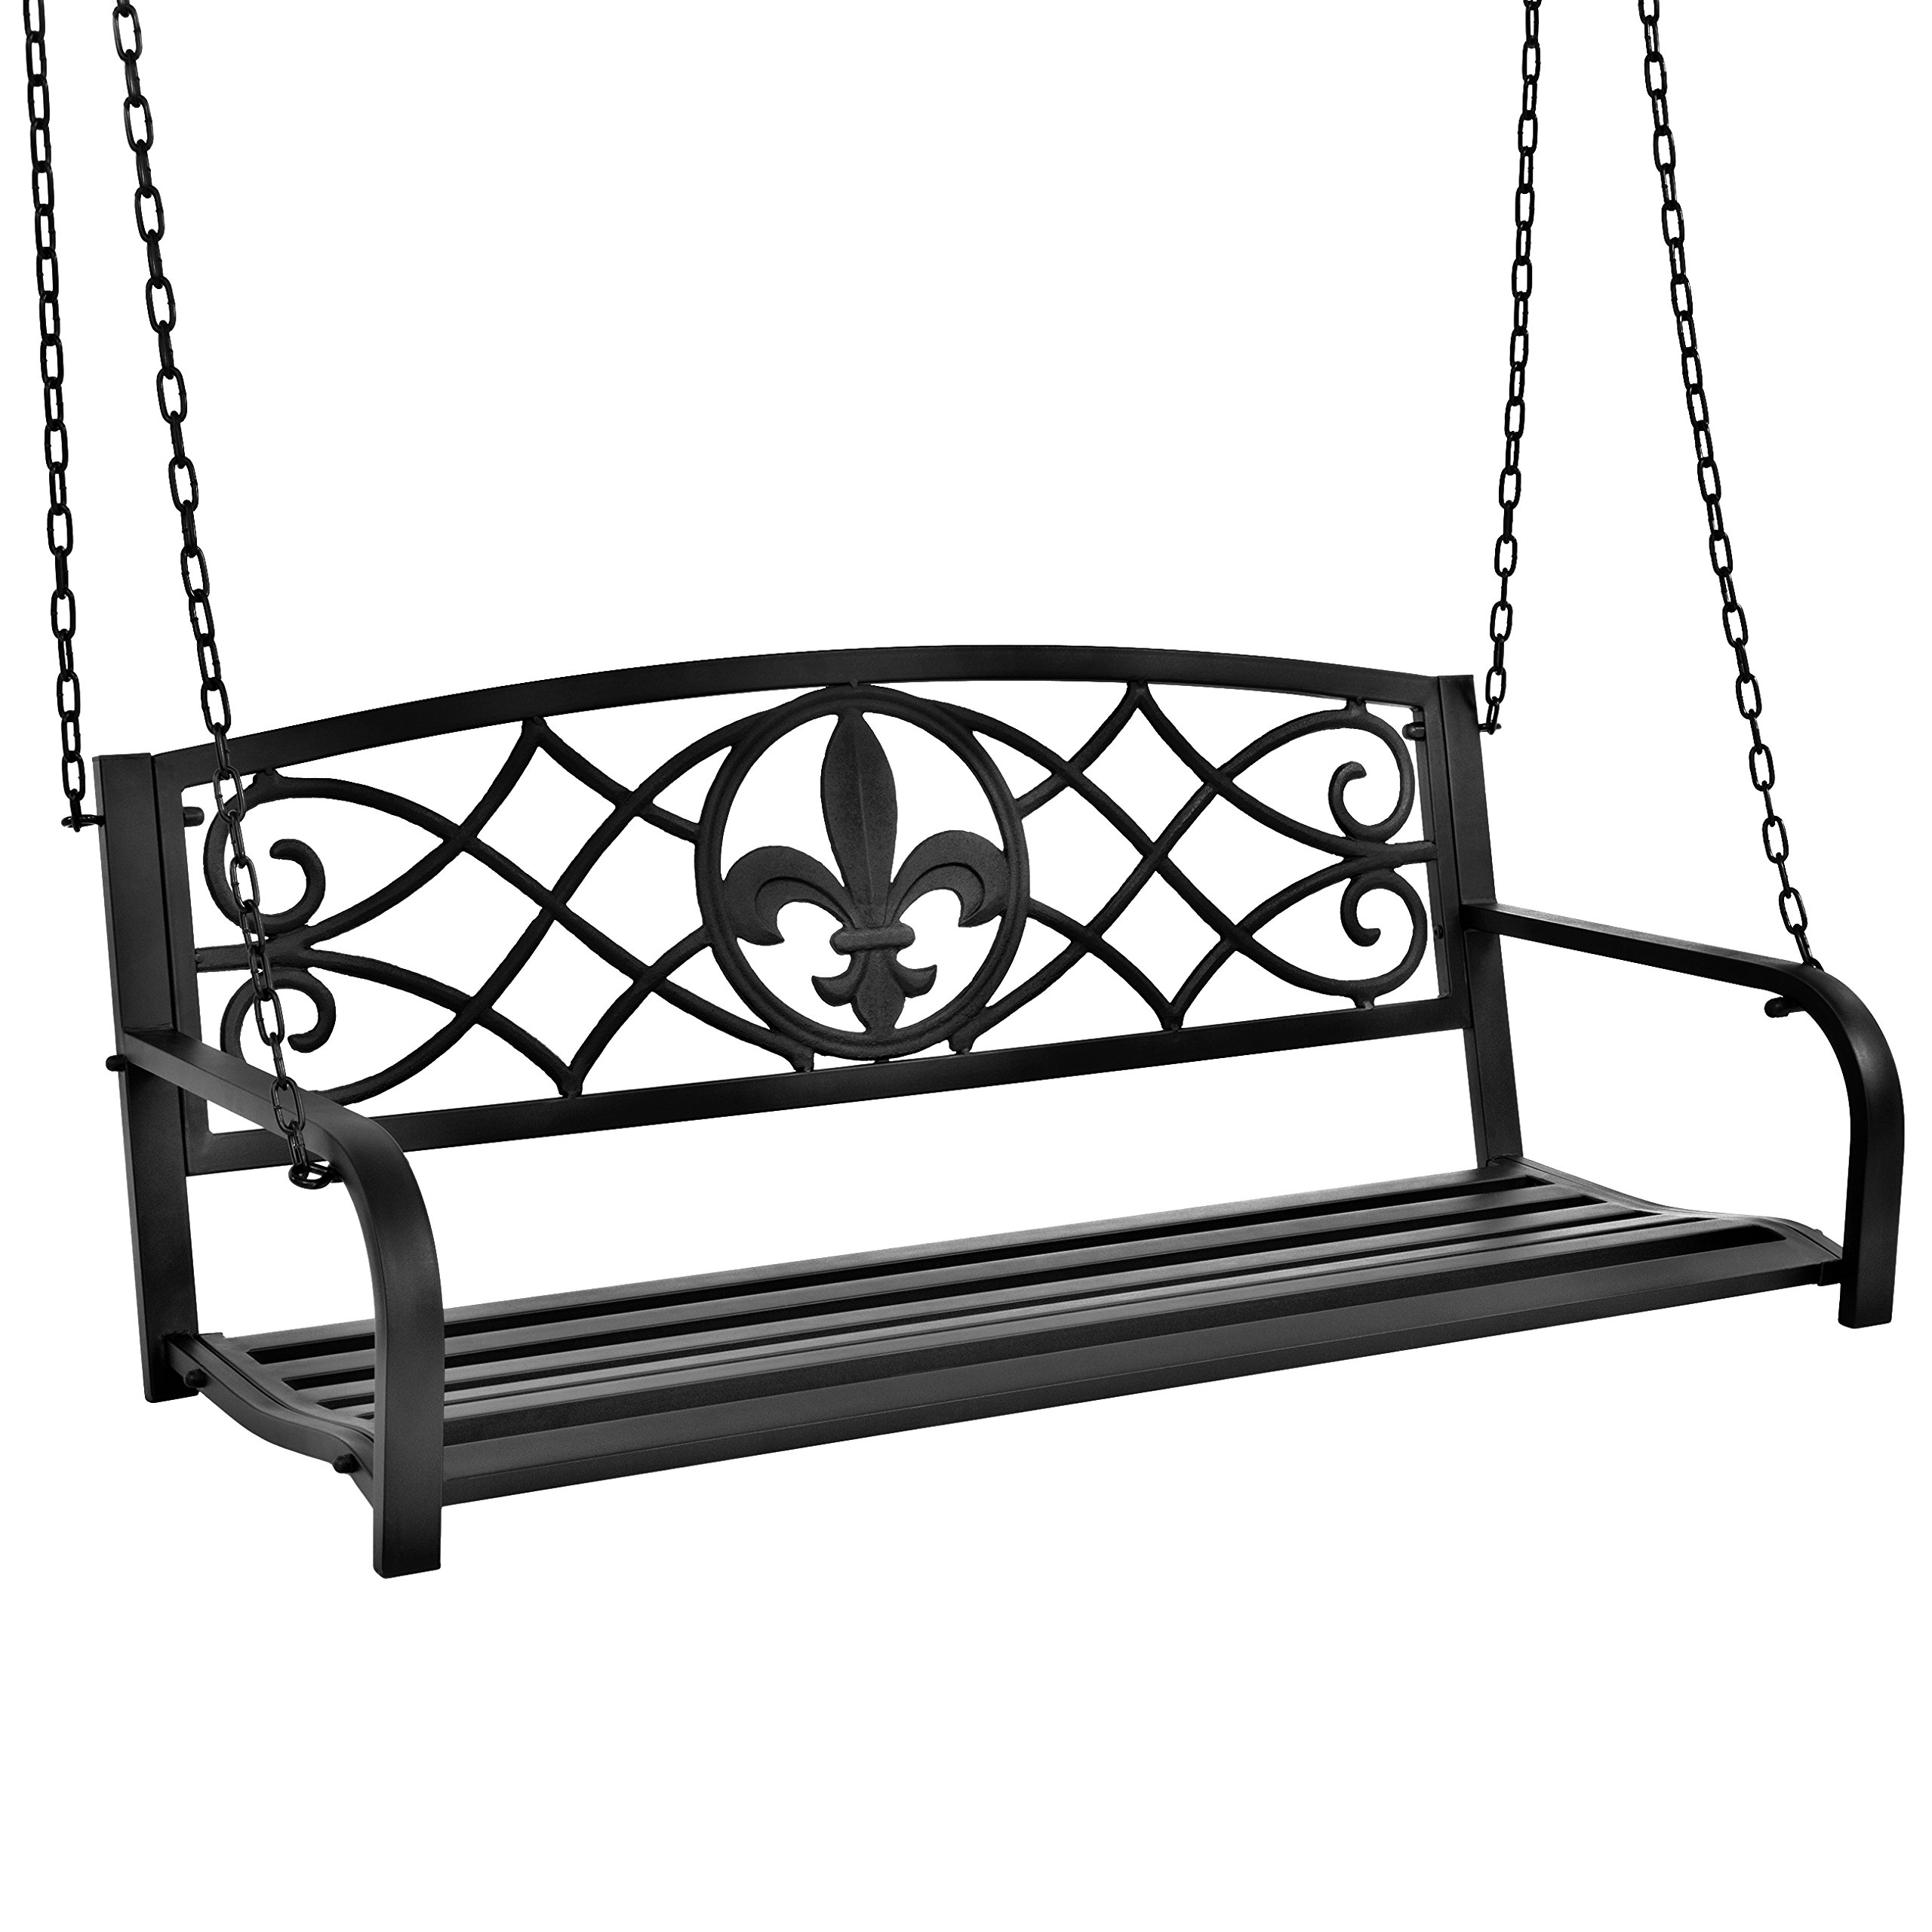 Best Choice Products Outdoor Metal Fleur-De-Lis Hanging Swing Bench with Weather-Resistant Steel, Black by Best Choice Products